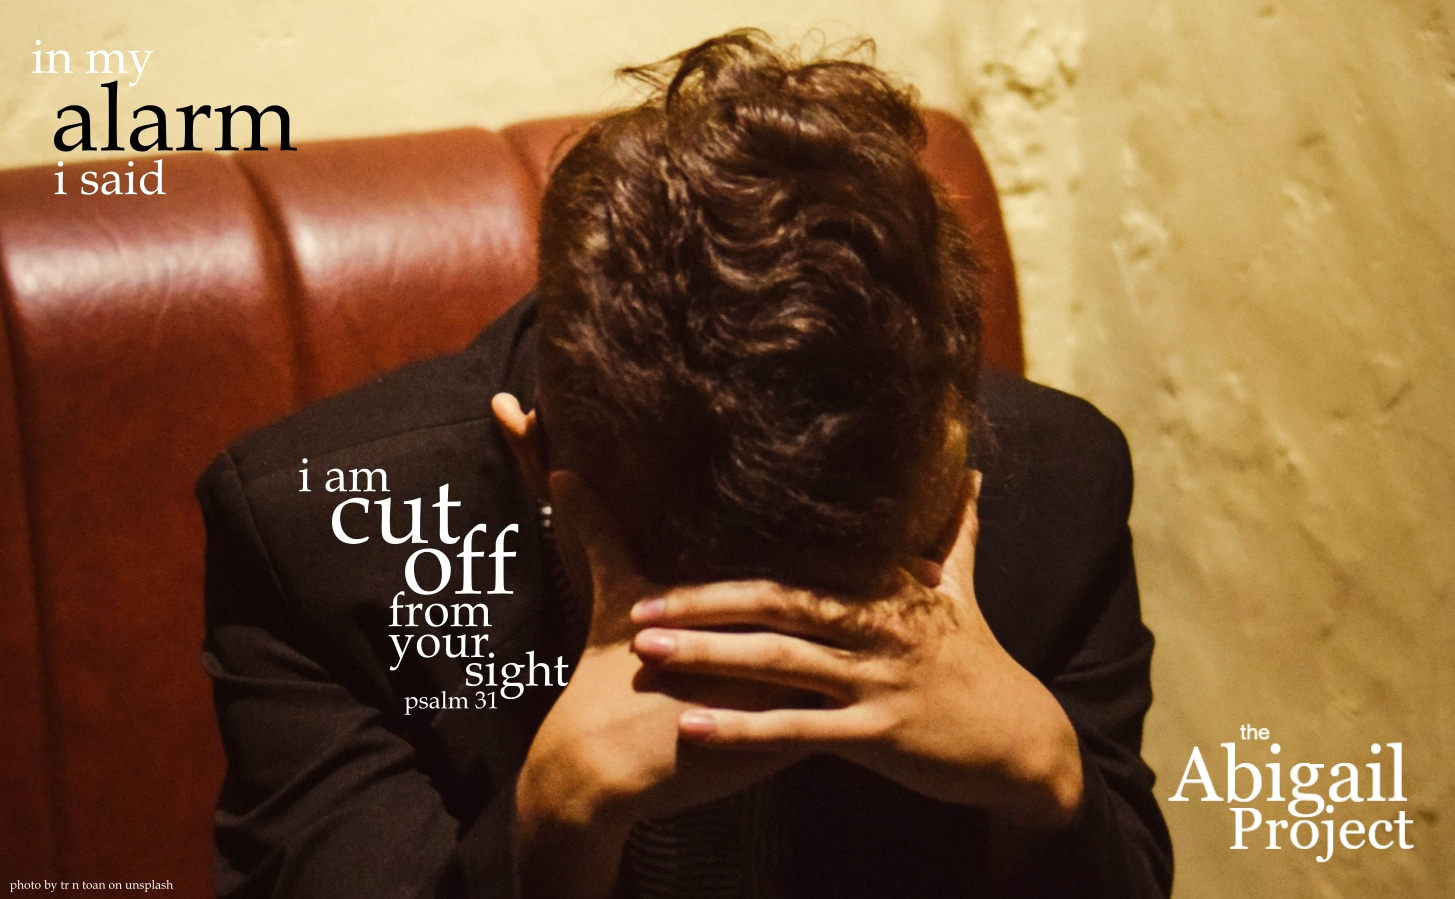 in my alarm i said i am cut off from your sight psalm 31-22